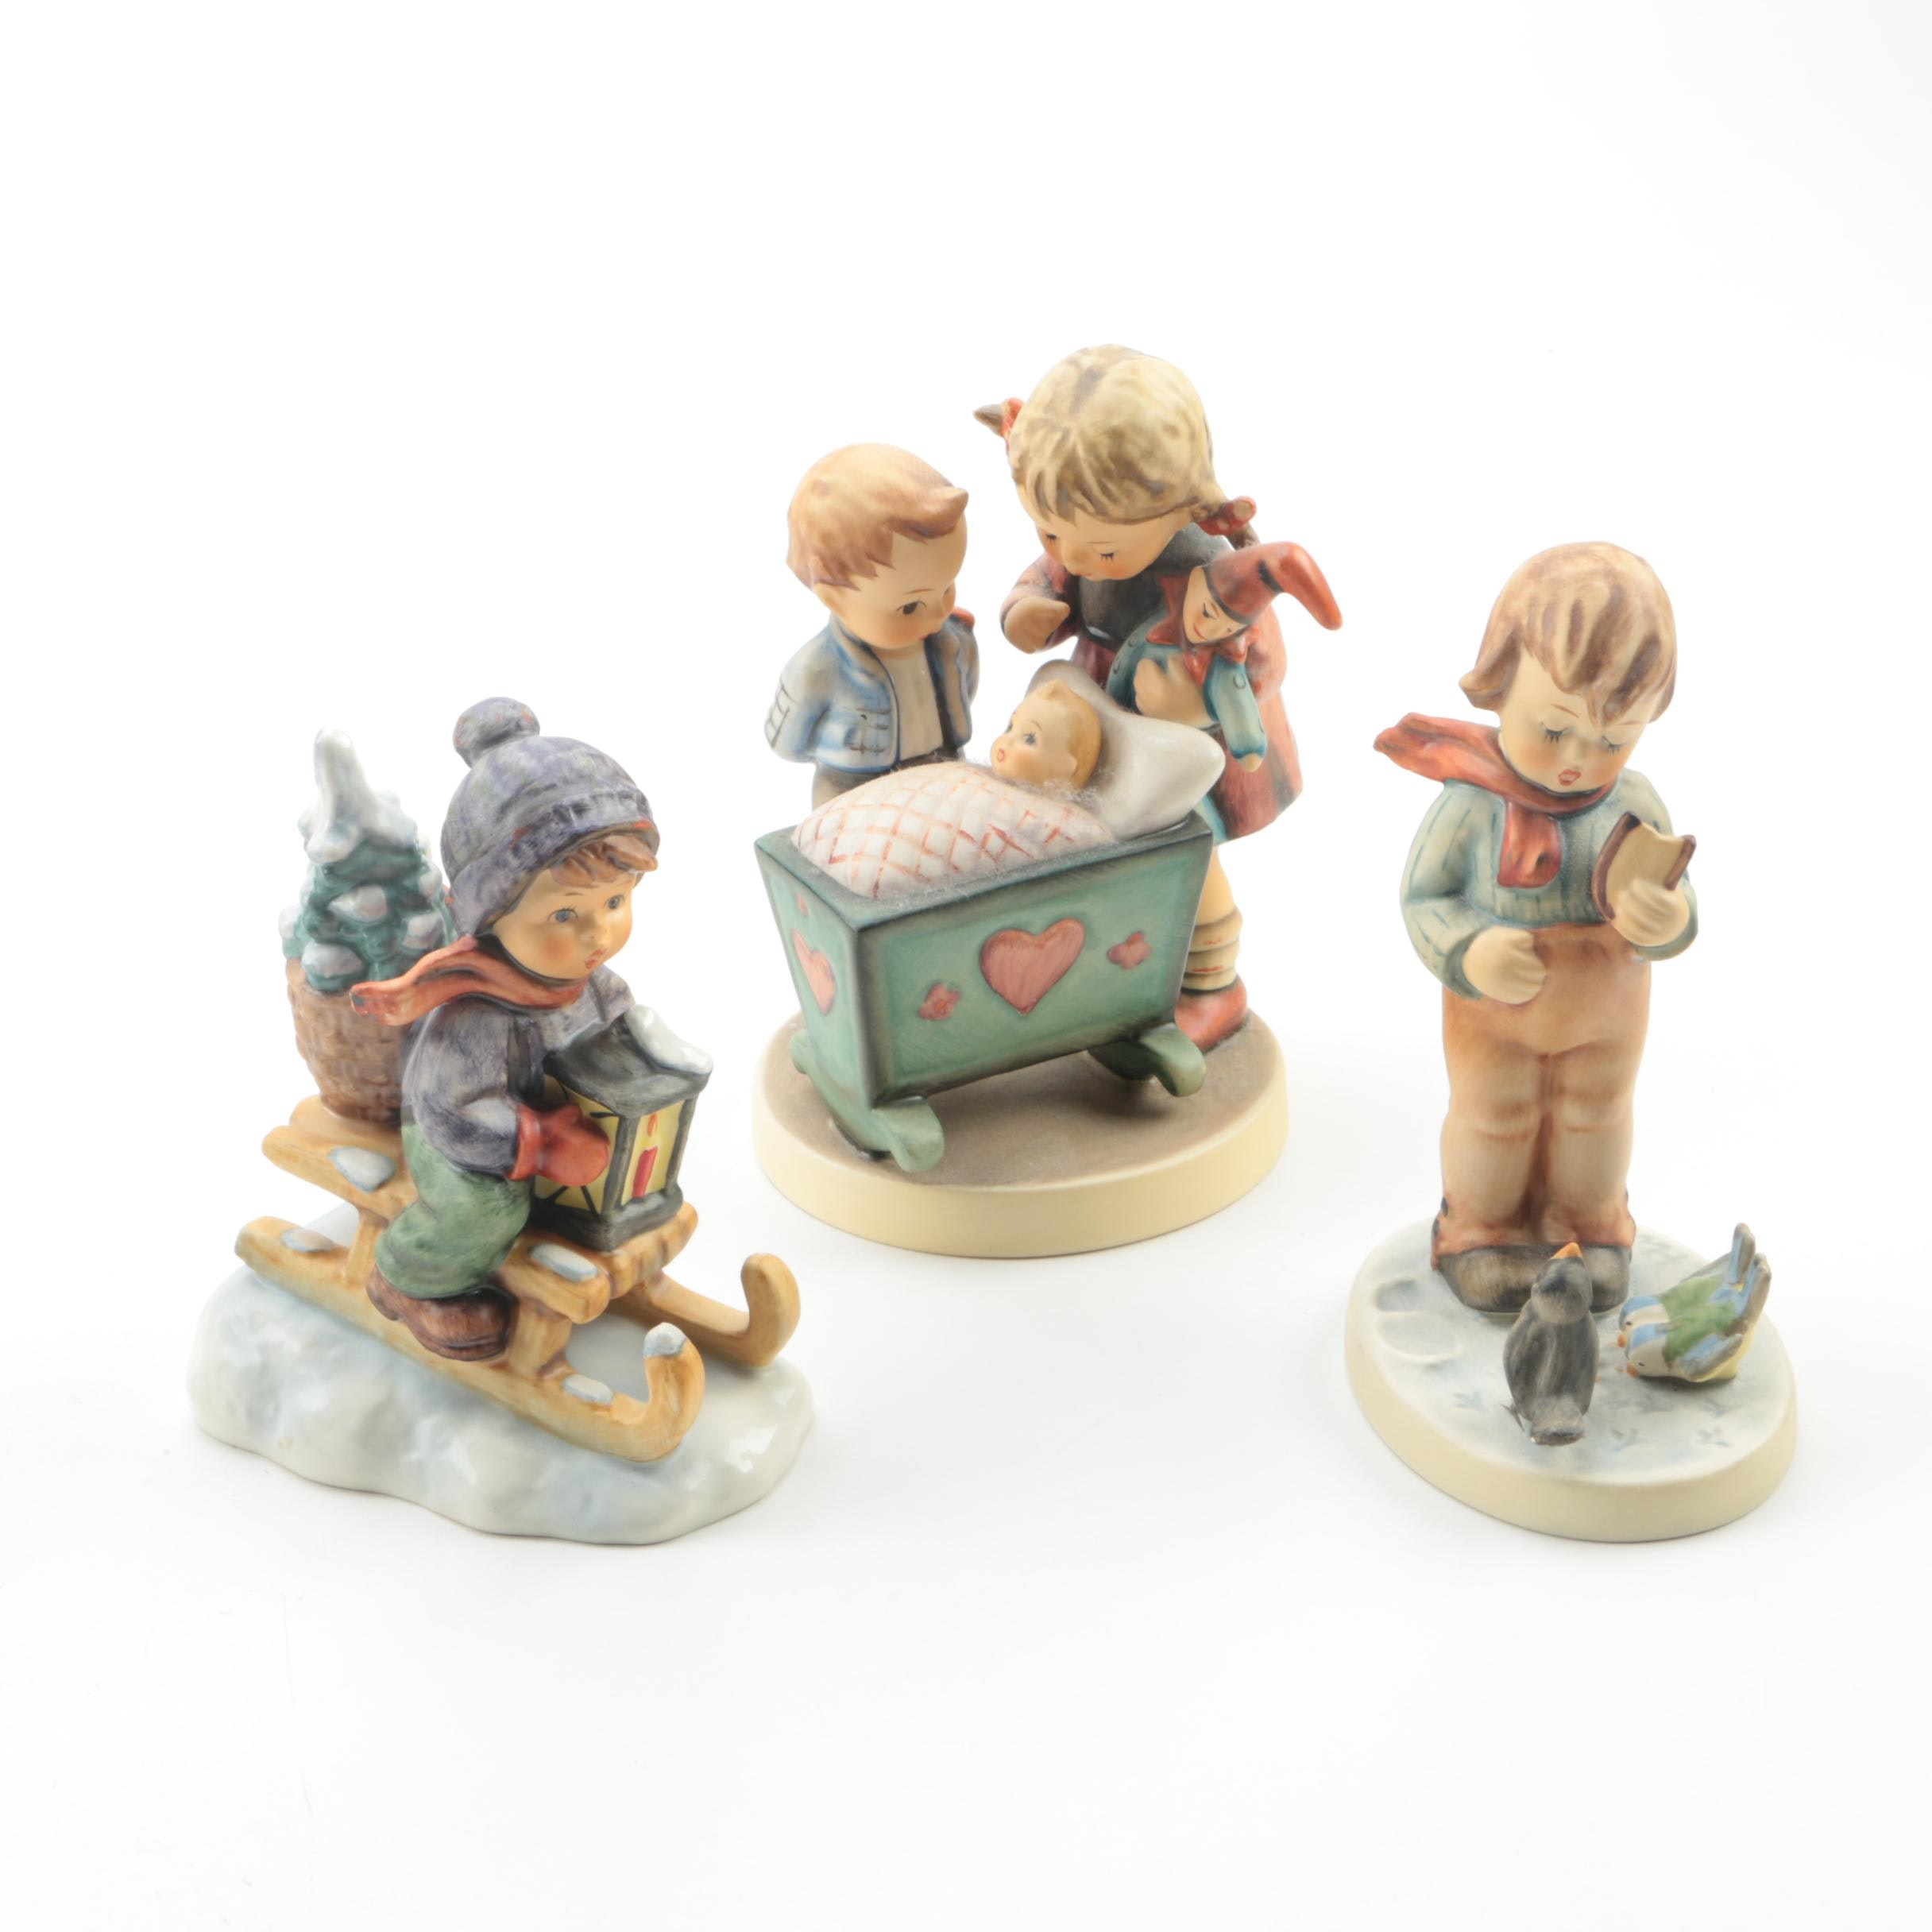 "Vintage Hummel Porcelain Figurines Featuring ""Ride Into Christmas"""